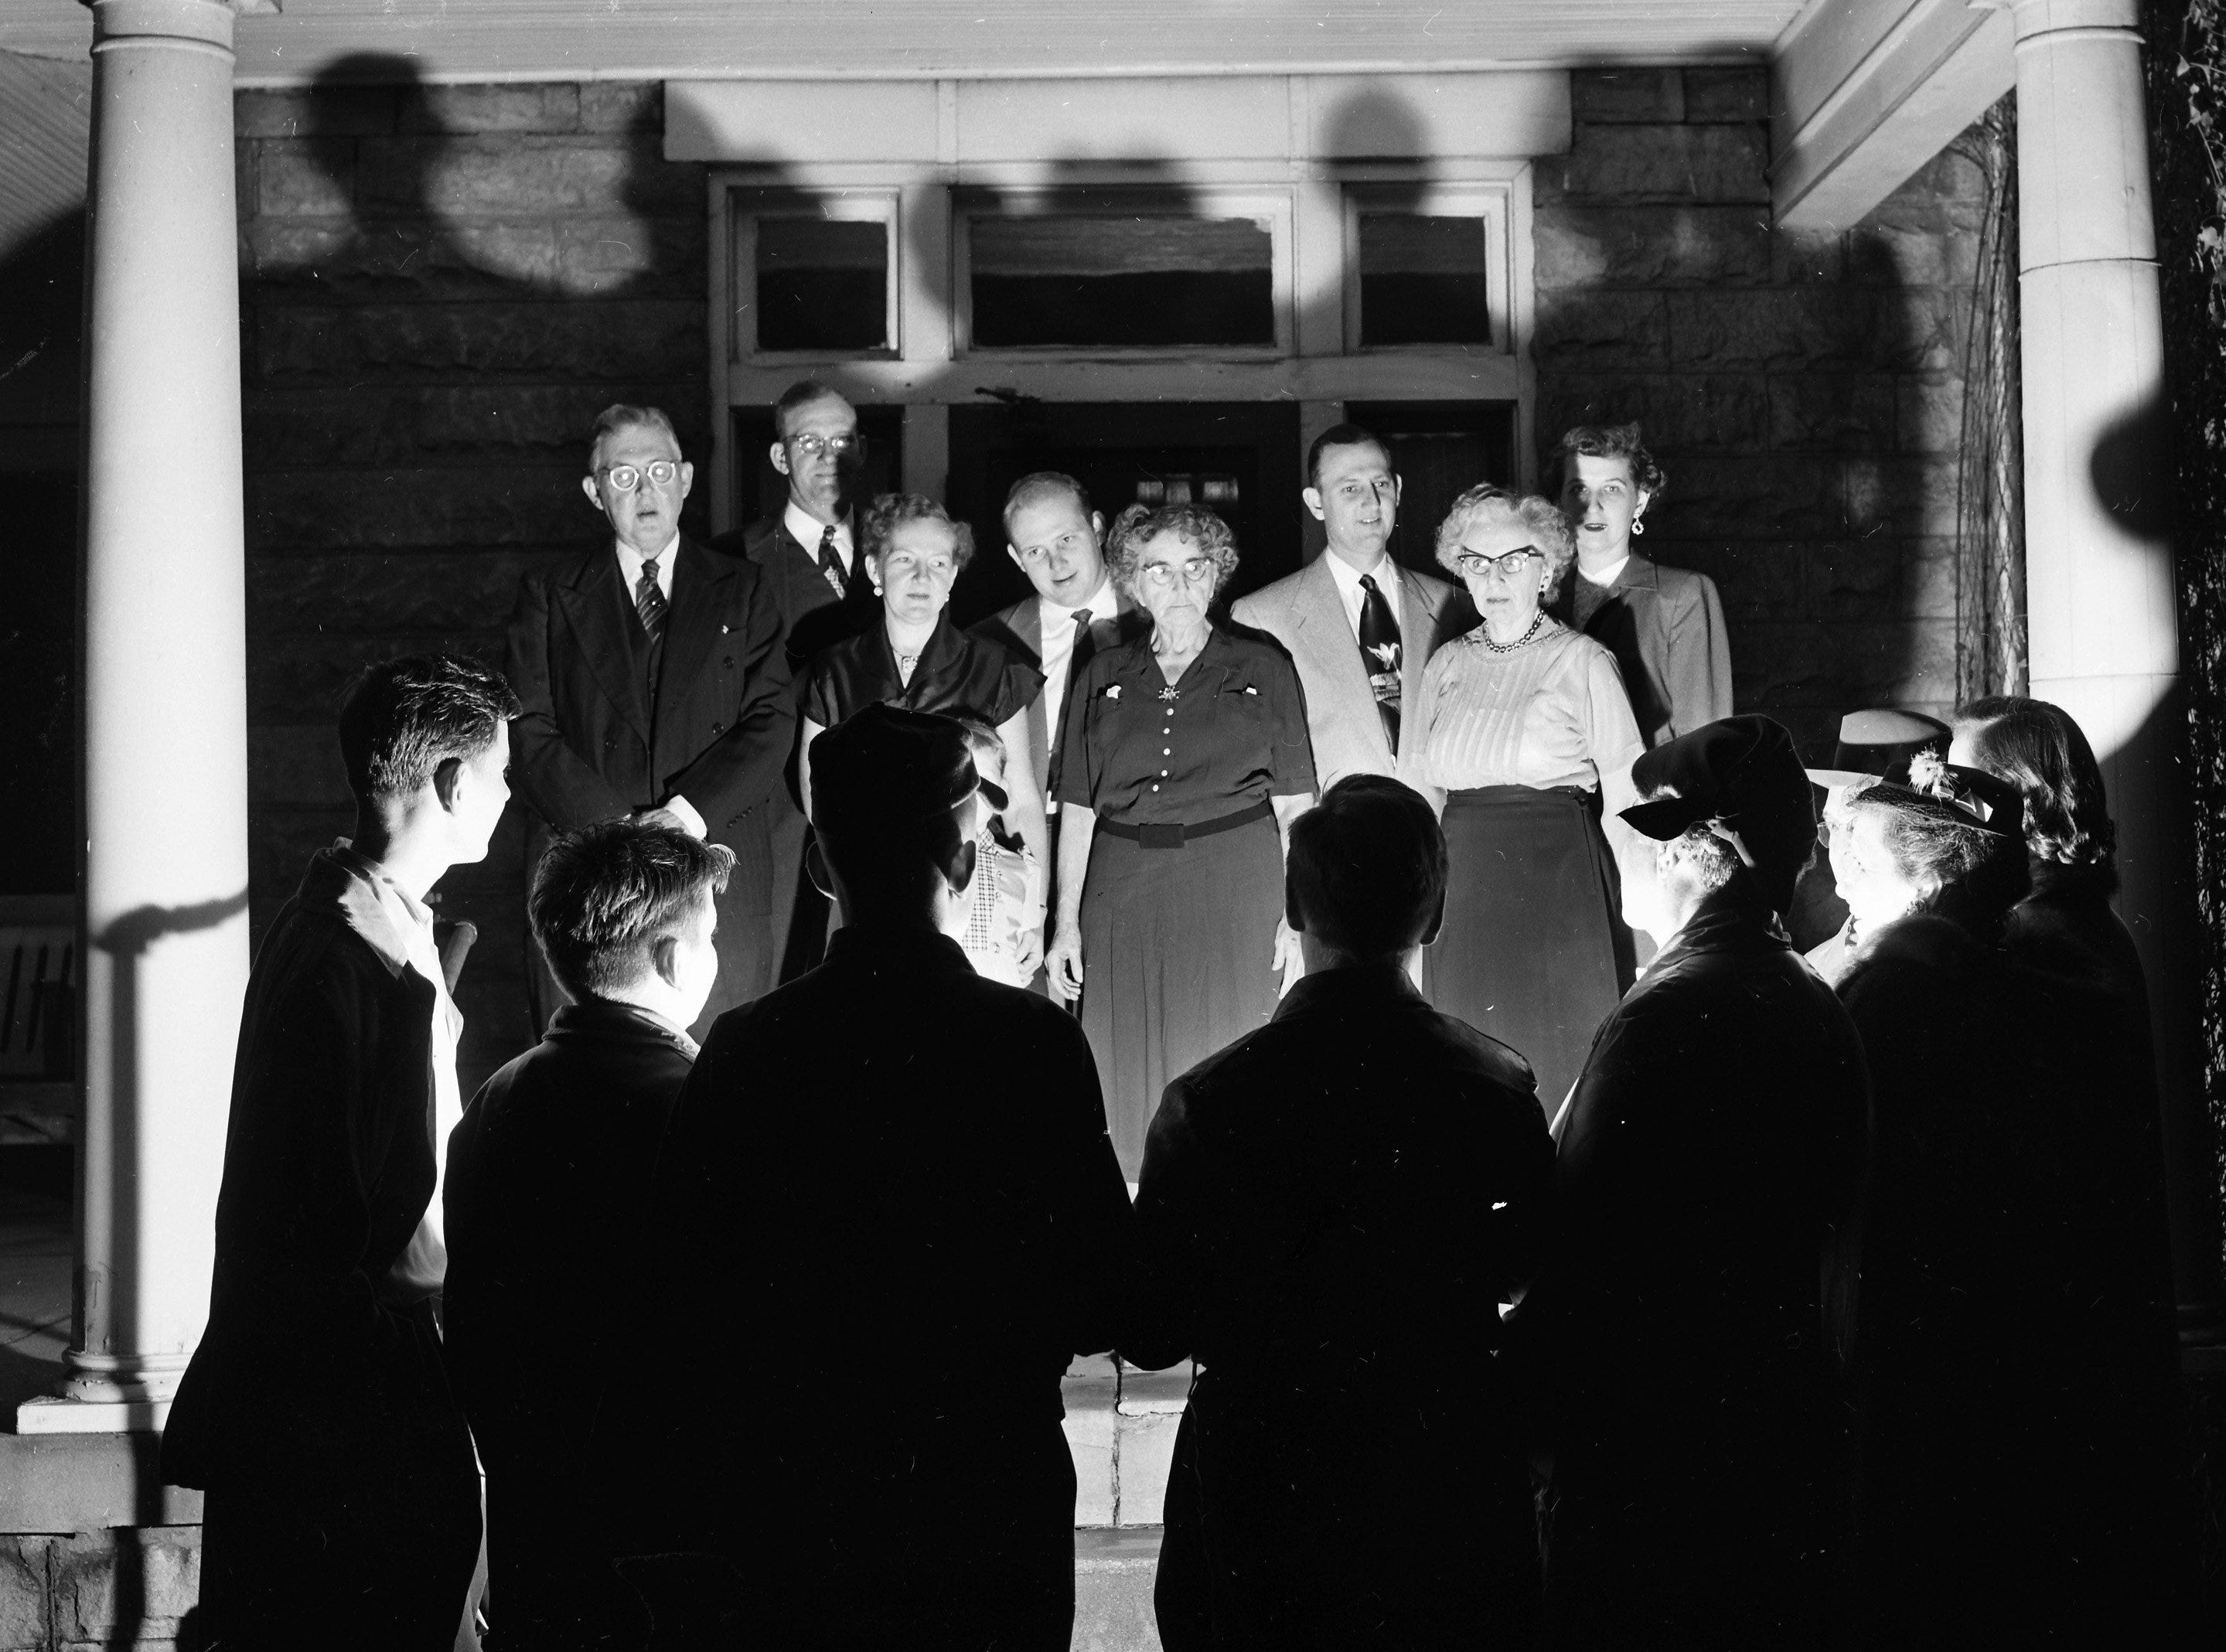 The sweet but gently sad strains of old beloved Christmas carols drew out a family party on 21 Dec 1953 at the home of Mrs. W. R. McDonald of 1399 Harbert — among thousands who heard carolers for the King's Daughters. Mrs. M.H. Speltz of Joy Circle led Boy Scouts from Troop 34 and others in canvassing Harbert for contributions to the Home for Incurables, following the carols.